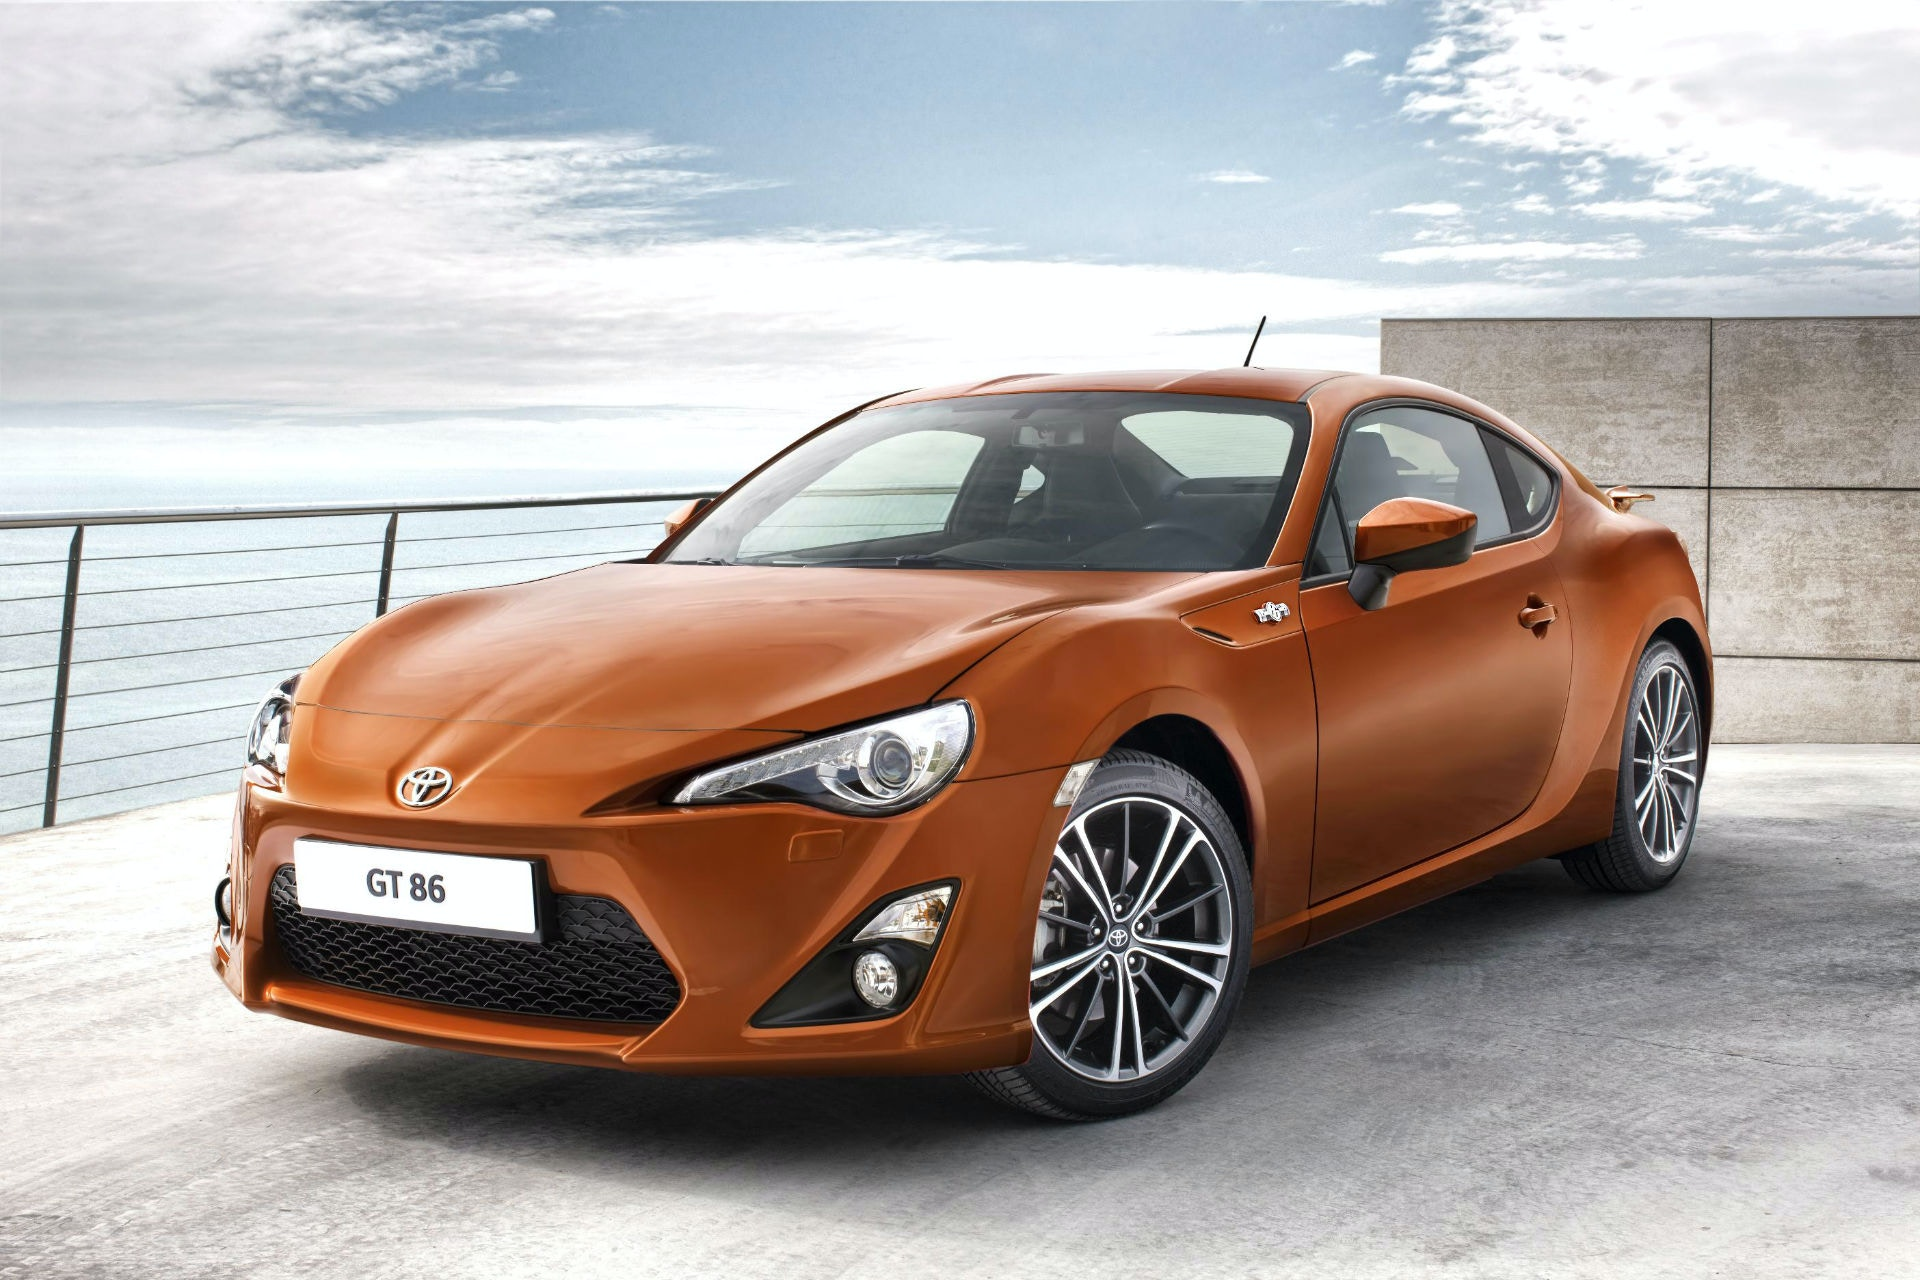 Toyota's GT86 can be a fun rear wheel drive sportscar for less than £10,000.